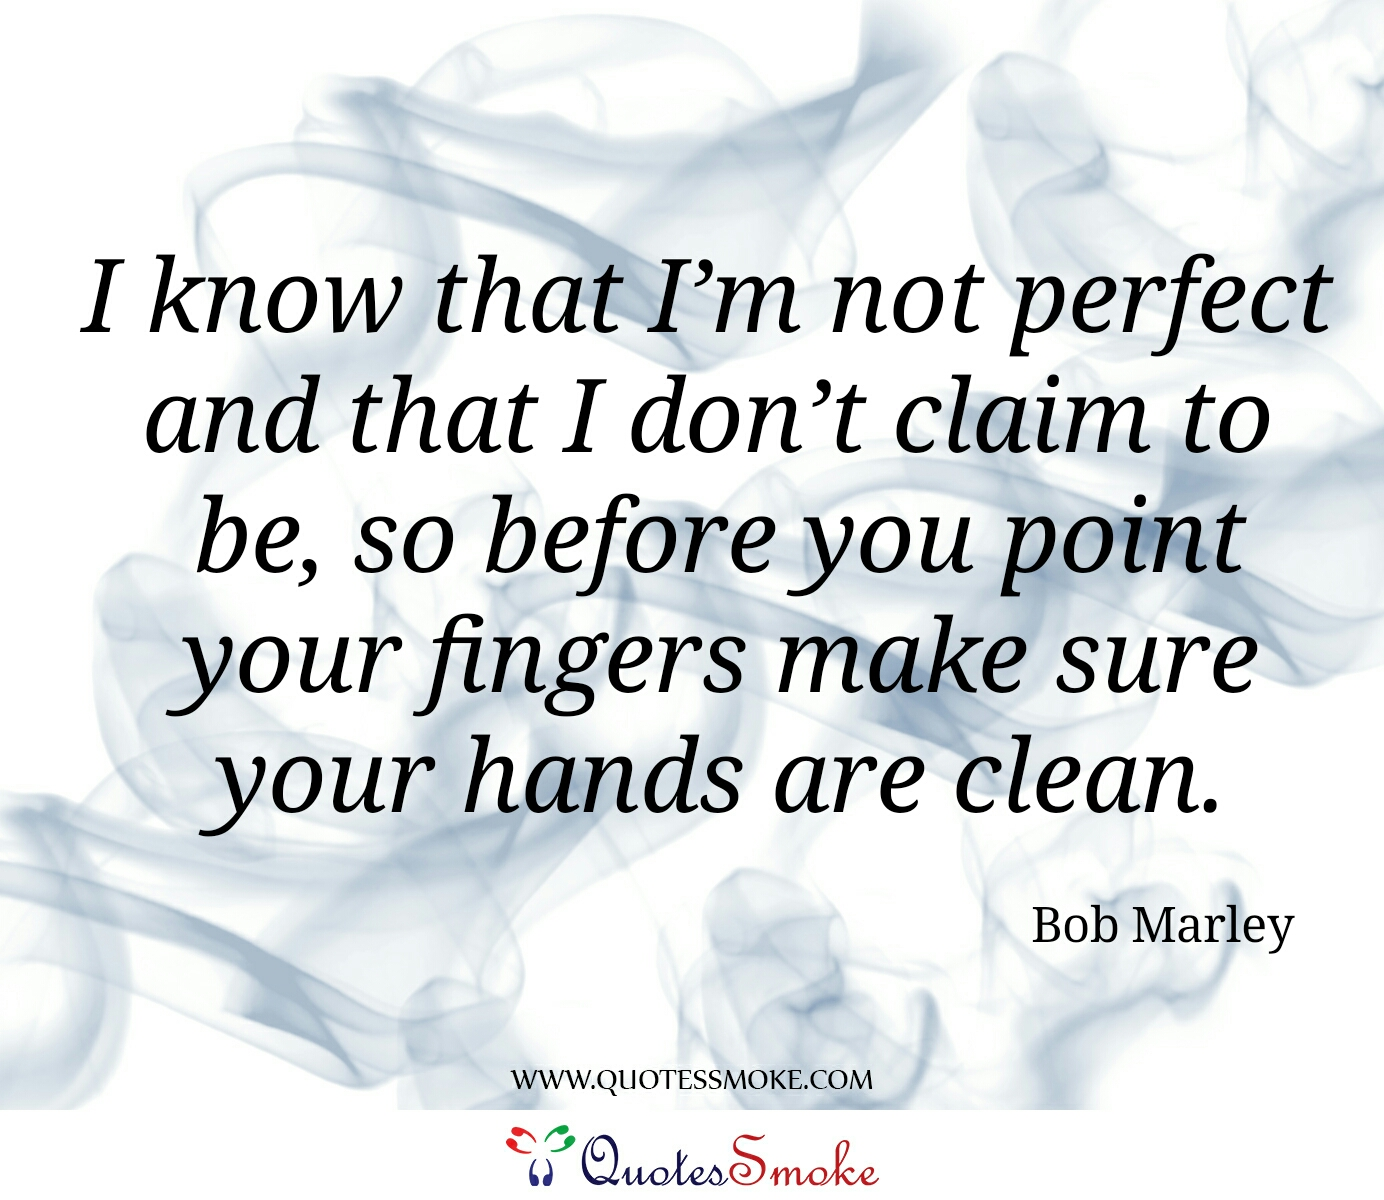 109 Bob Marley Quotes That Will Uplift Your Thinking Quotes Smoke